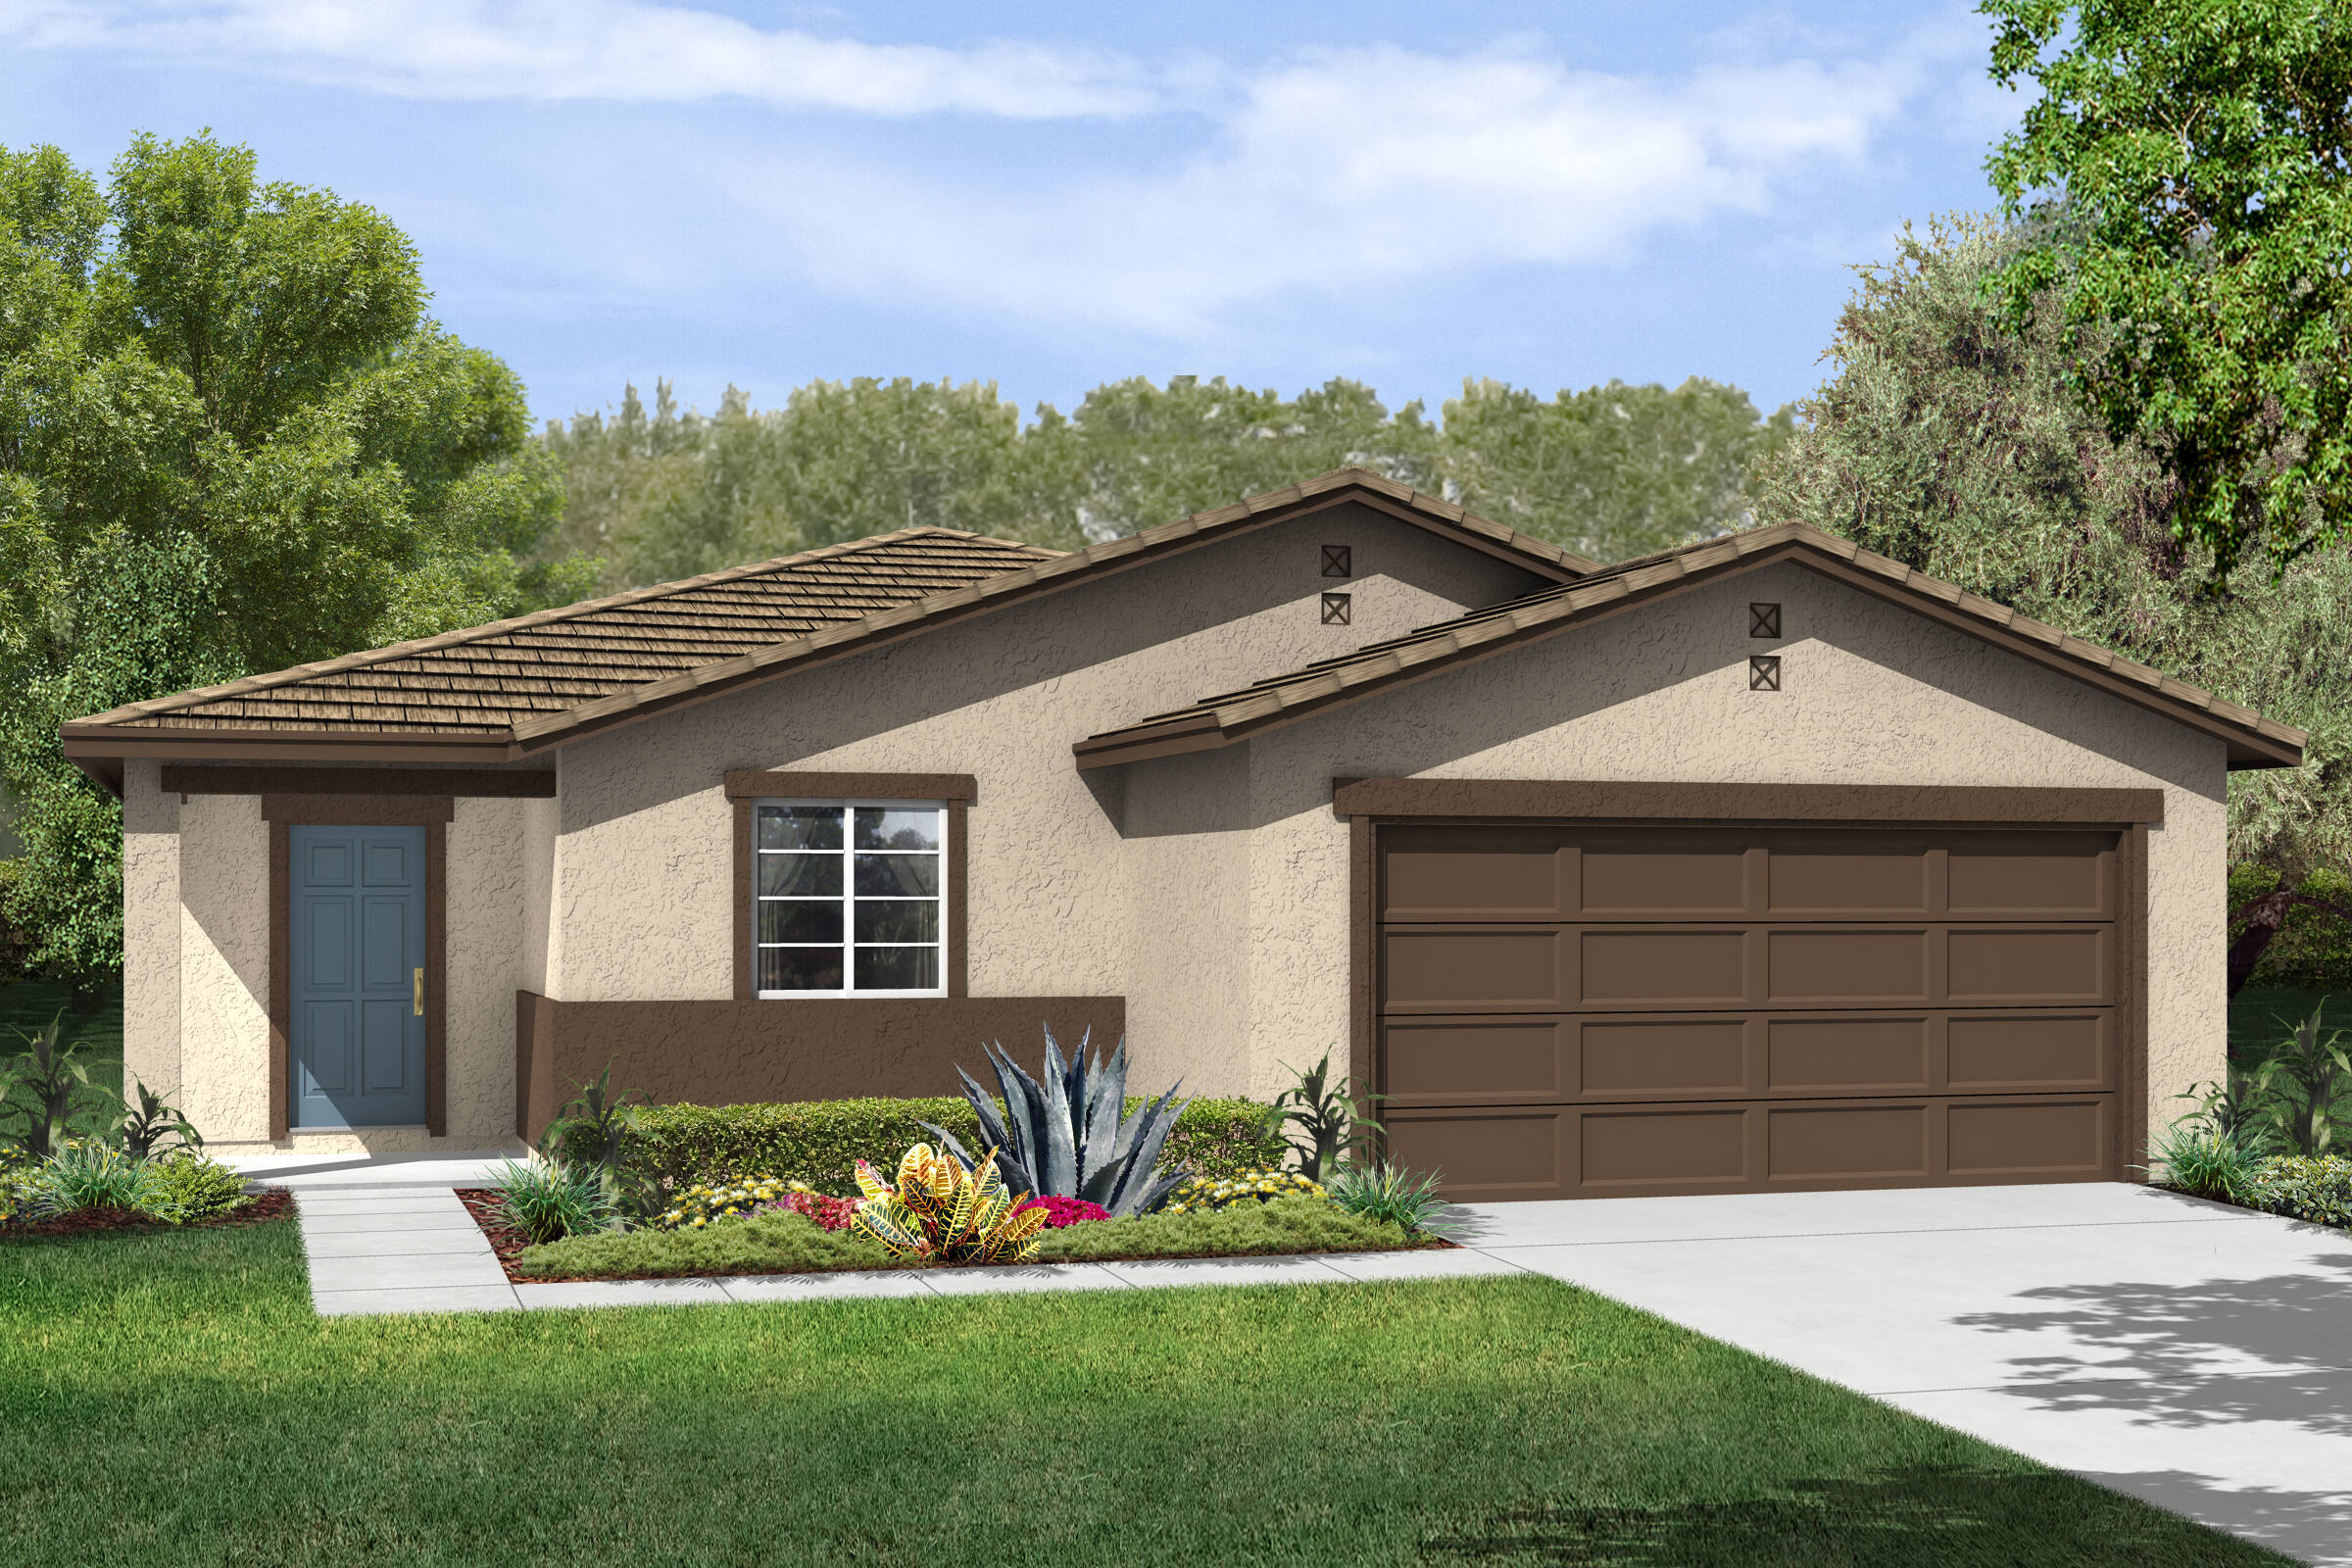 estrella b new homes in arvin california